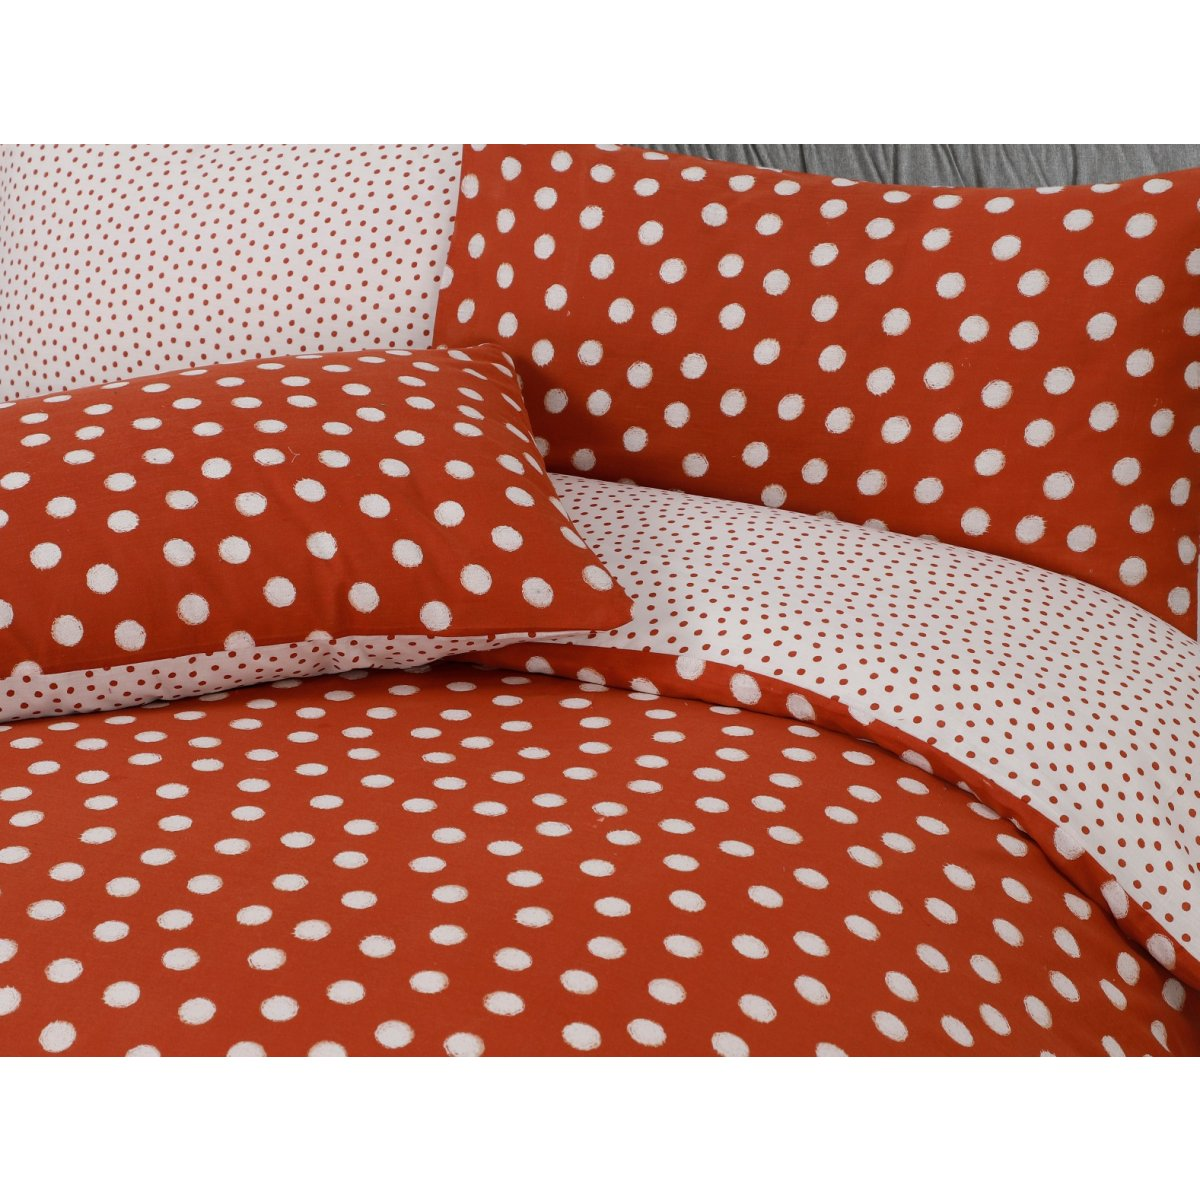 Polka Dot Rust Bedding - Reversible Duvet Cover and Pillowcase Set